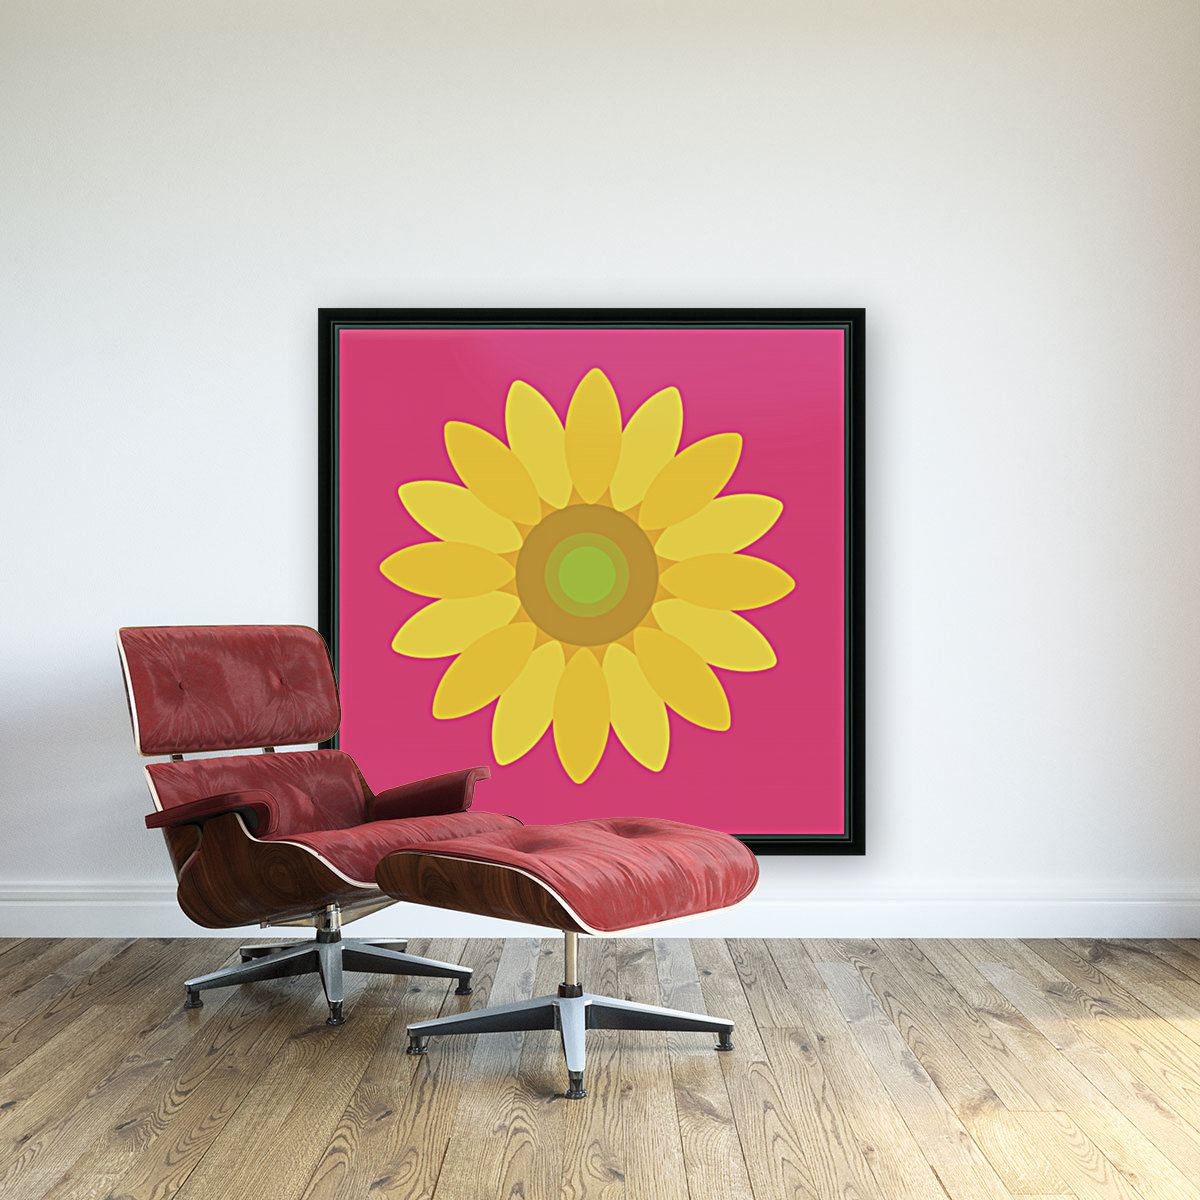 Sunflower (10)_1559876665.7513 with Floating Frame